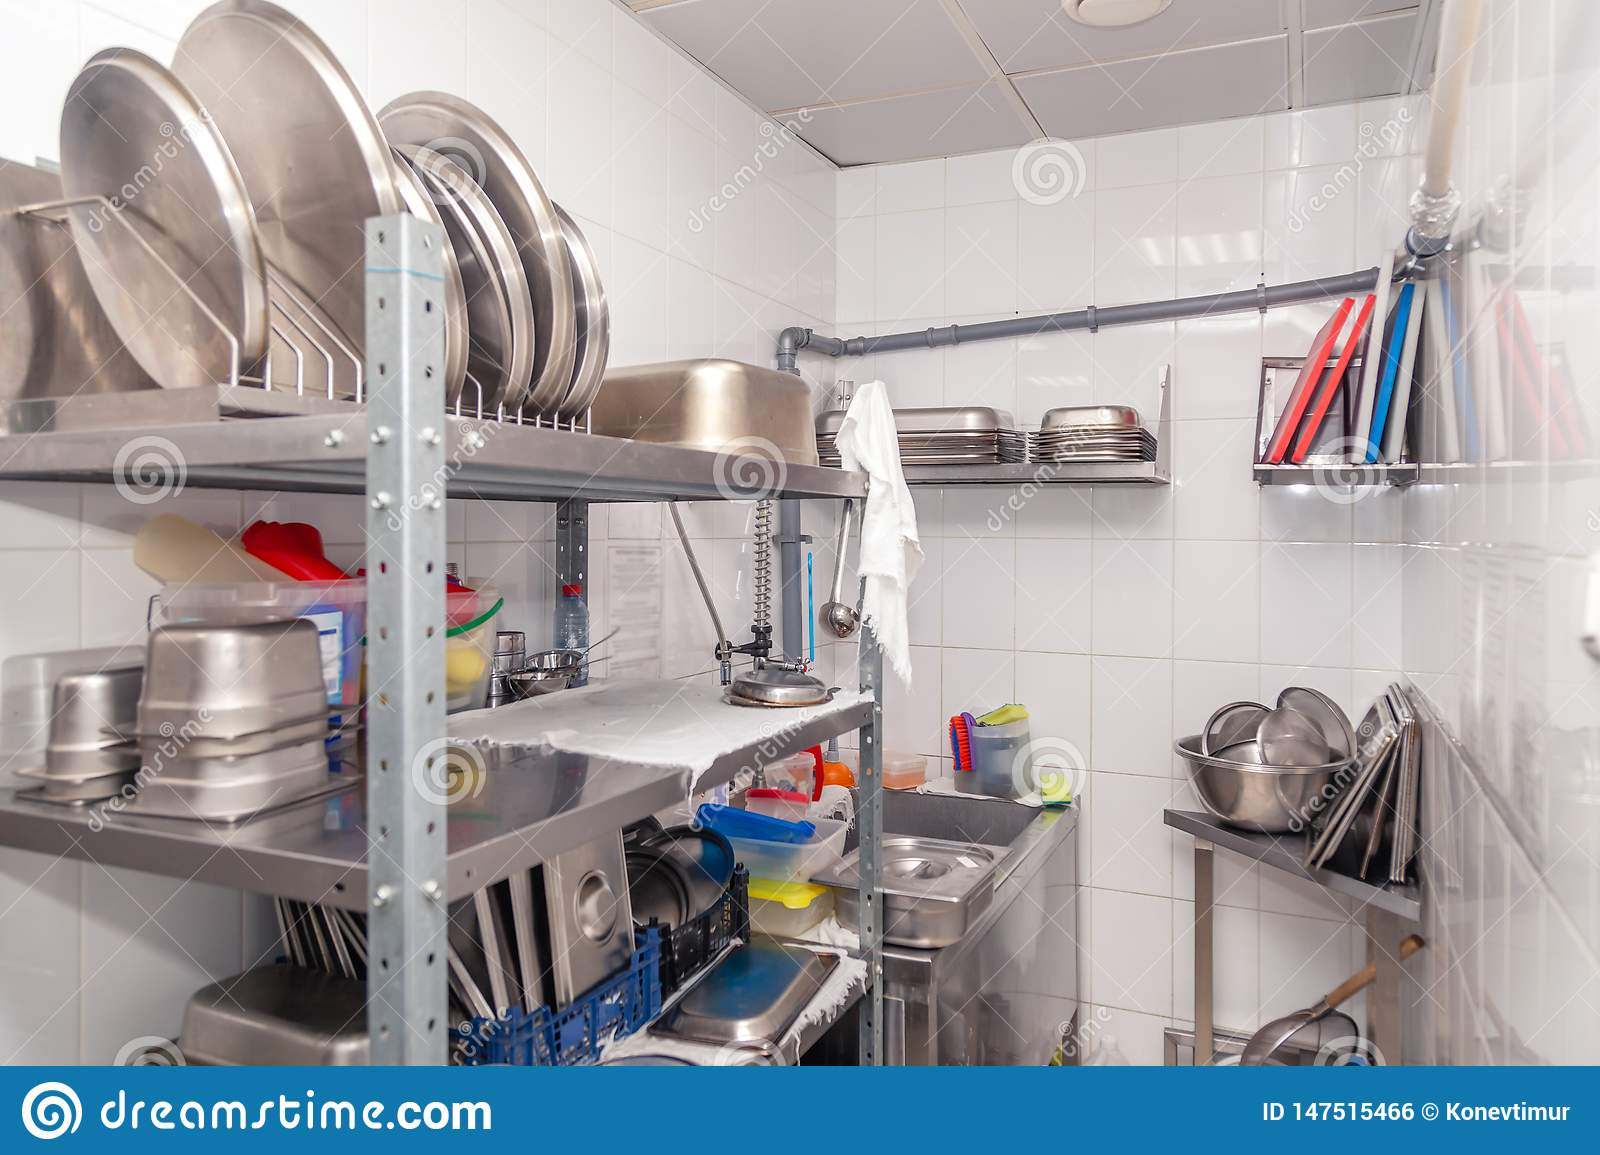 View Of Restaurant S Professional Washer Sink Brushes Metal Shelving And Shelves With Kitchen Utensils Cups Cutting Board Stock Photo Image Of Place Shelves 147515466